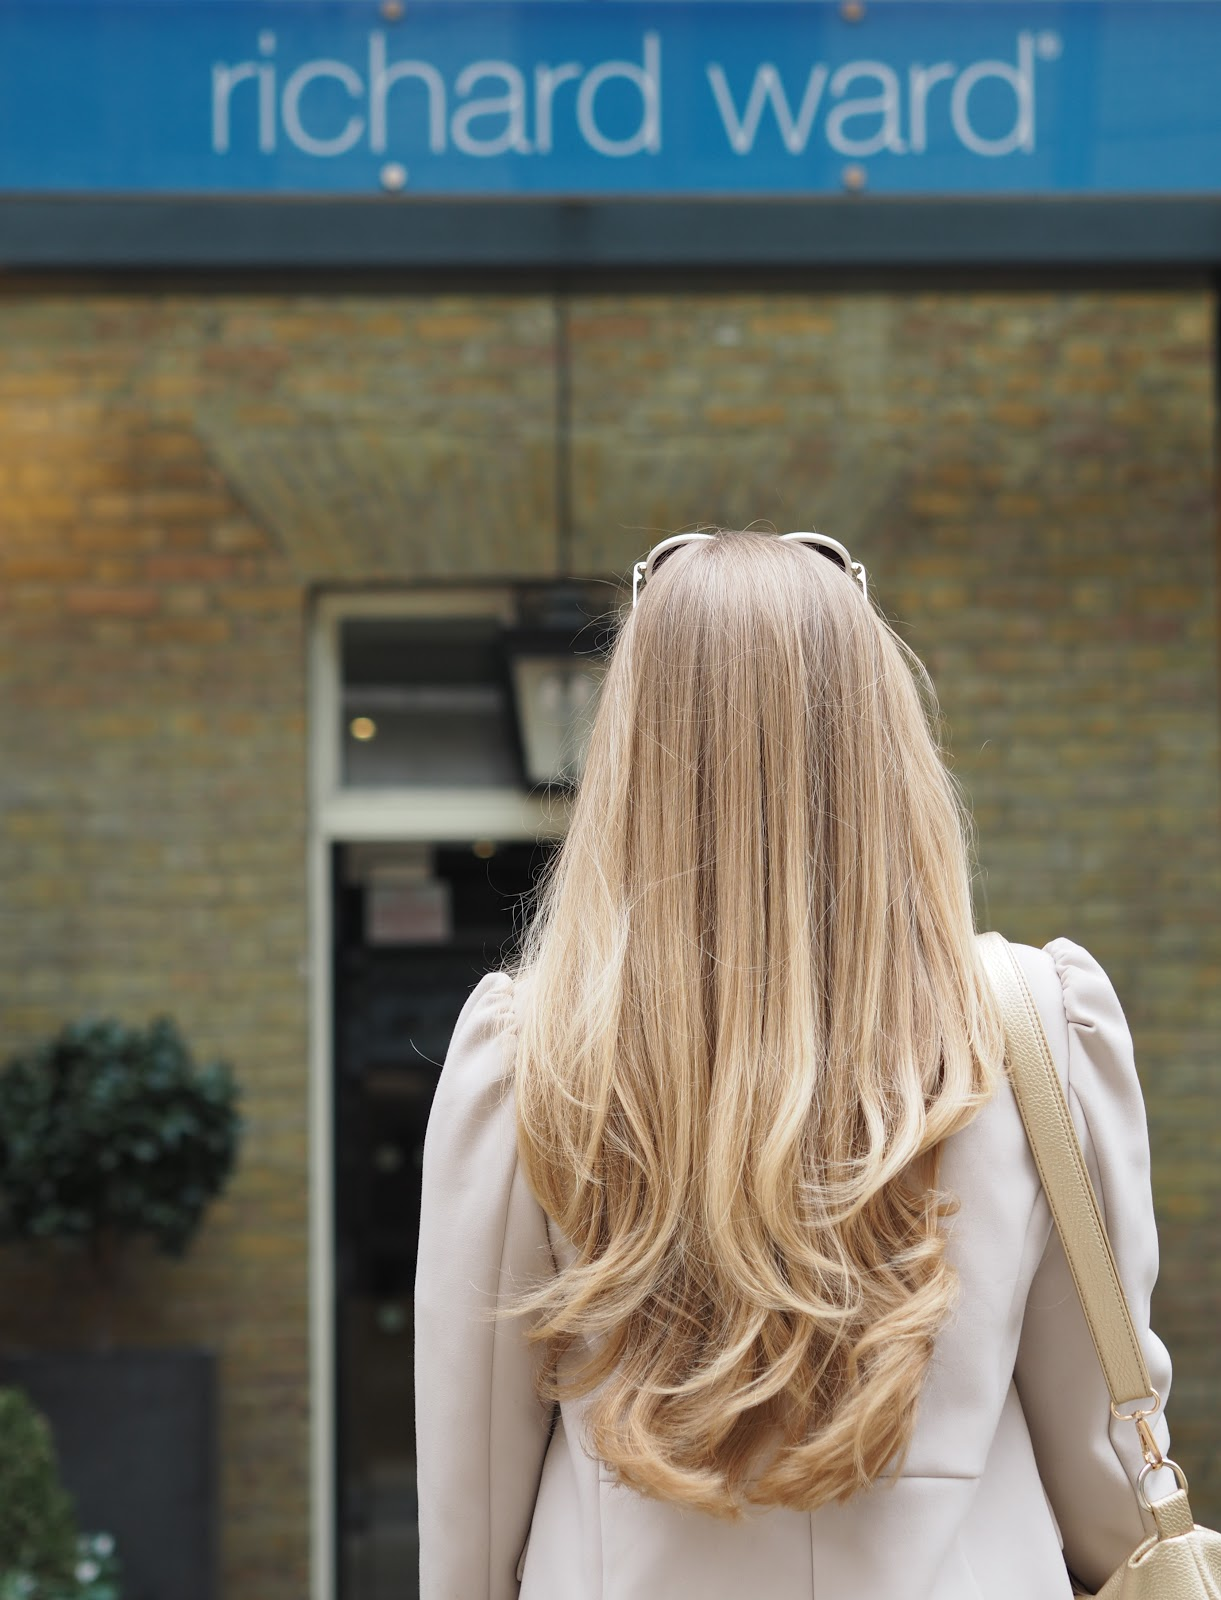 Blonde girl with a fresh blow dry outside the Richard Ward Salon, Chelsea, London